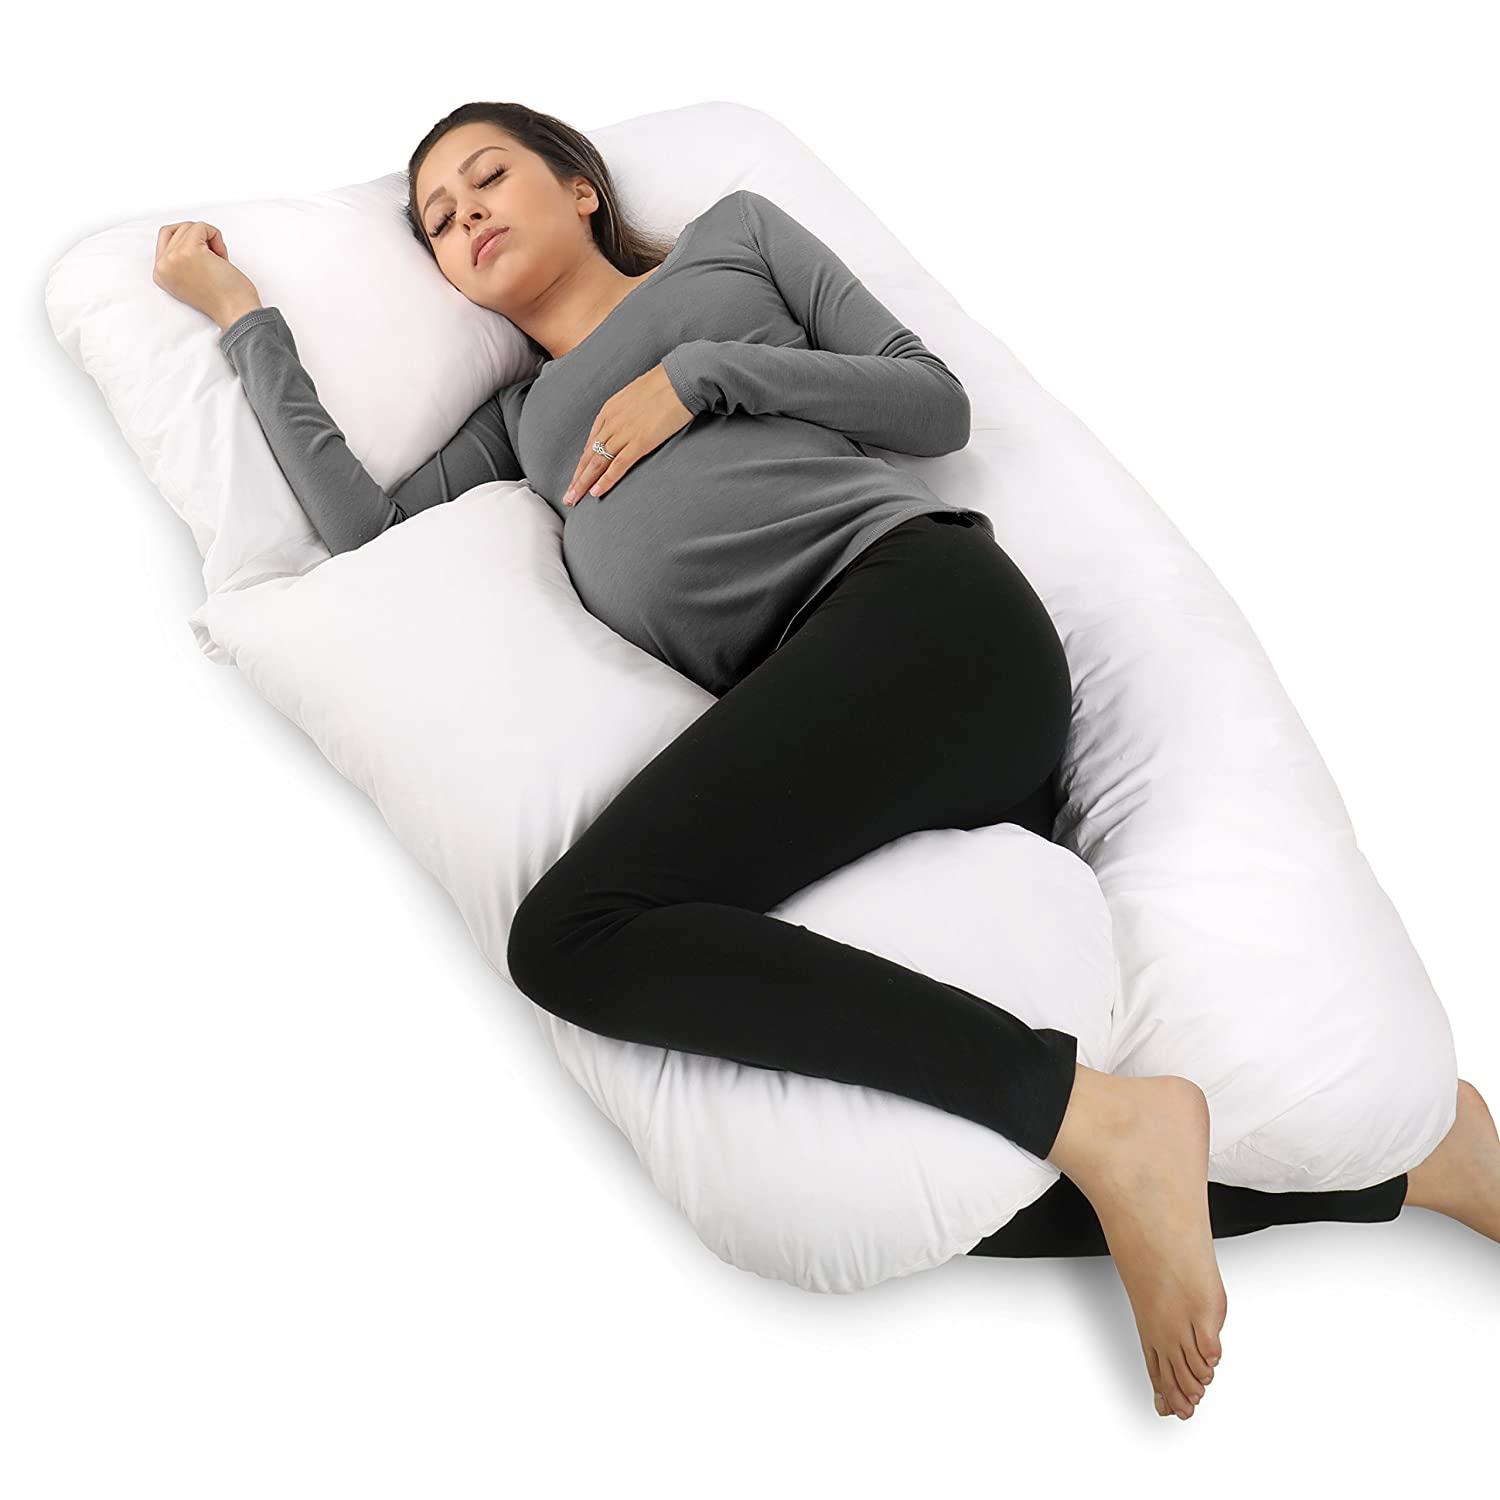 PharMeDoc Pregnancy Pillow, U-Shape Full Body Pillow and Maternity Support with Detachable Extension - Support for Back, Hips, Legs, Belly for Pregnant Women PMD-U-BP-WH